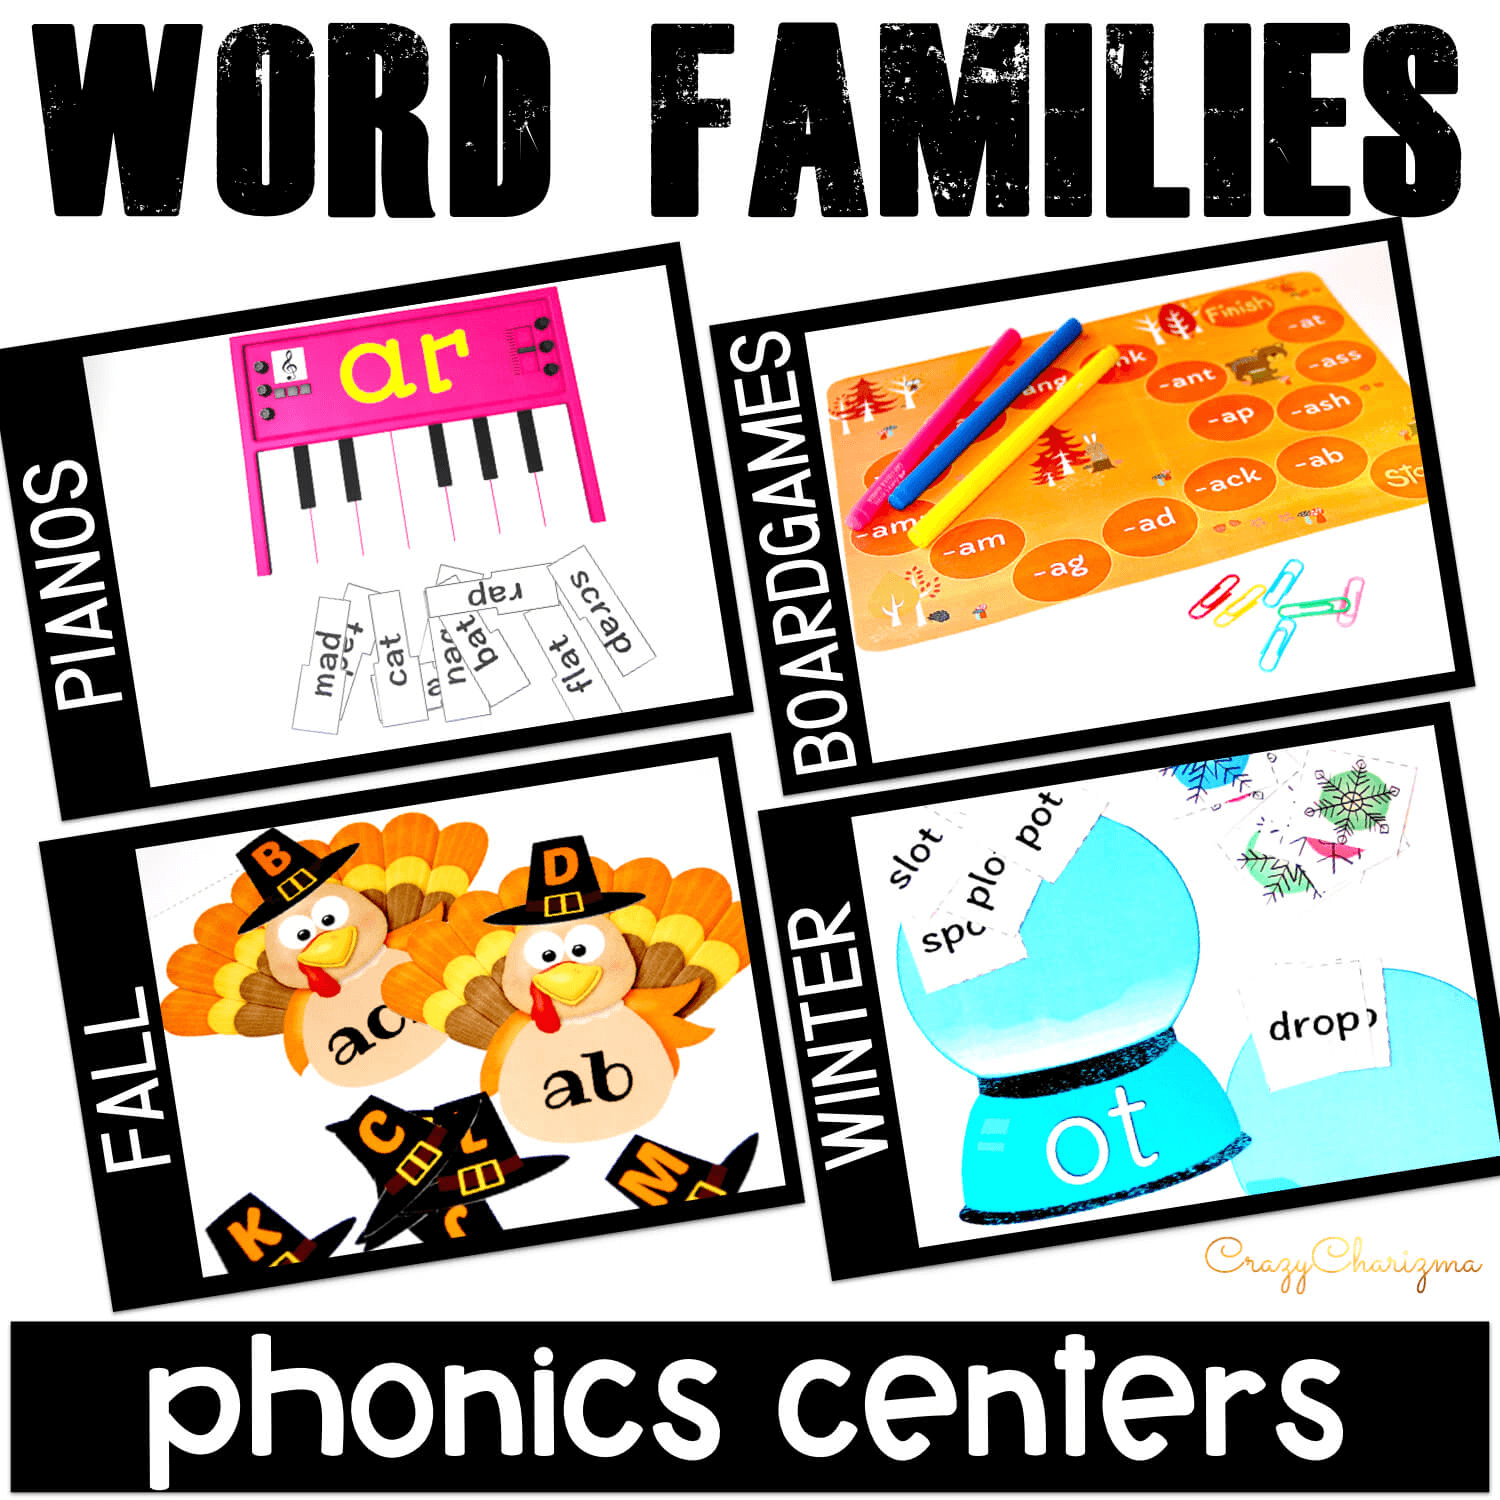 Struggling readers no more! Help students become more comfortable with reading word families words and rhyming. This packet of hands on phonics activities is for kids in preschool, kindergarten, first or second grade. Find inside general printables and seasonal worksheets. Use during daily 5, guided reading, spelling, literacy block, RTI, or during literacy centers.